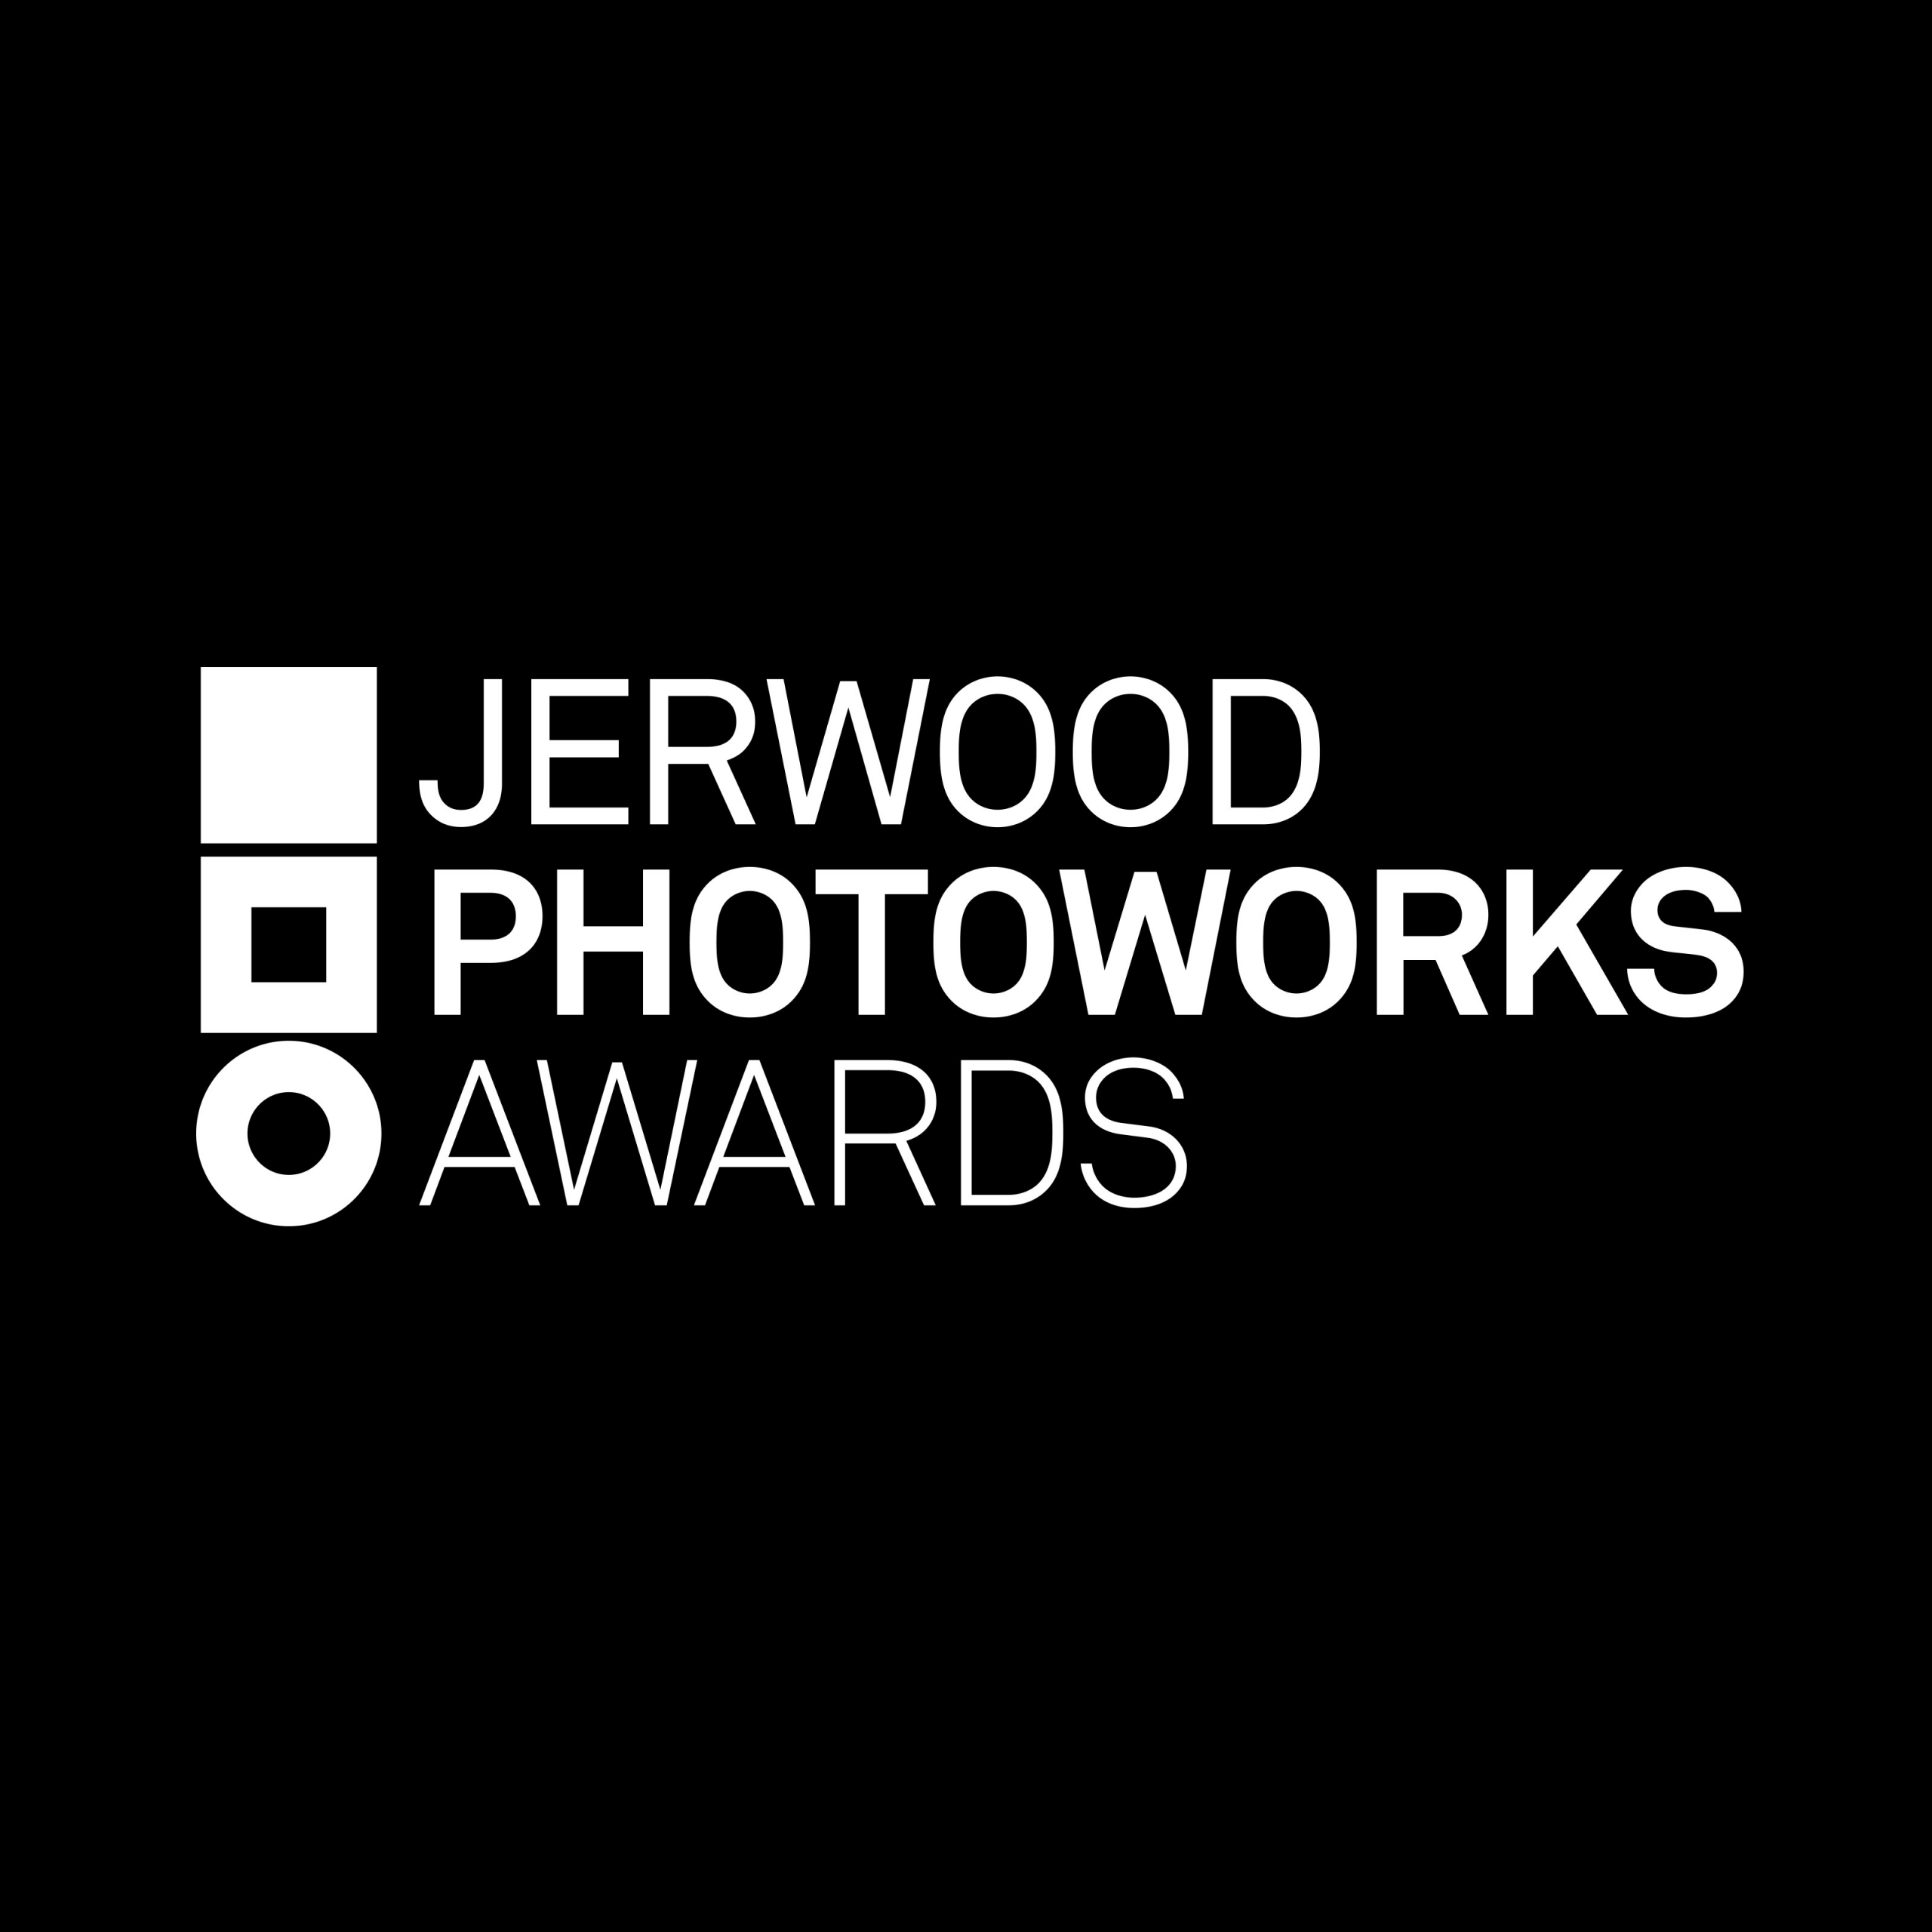 Call for Entry: Jerwood/Photoworks Awards